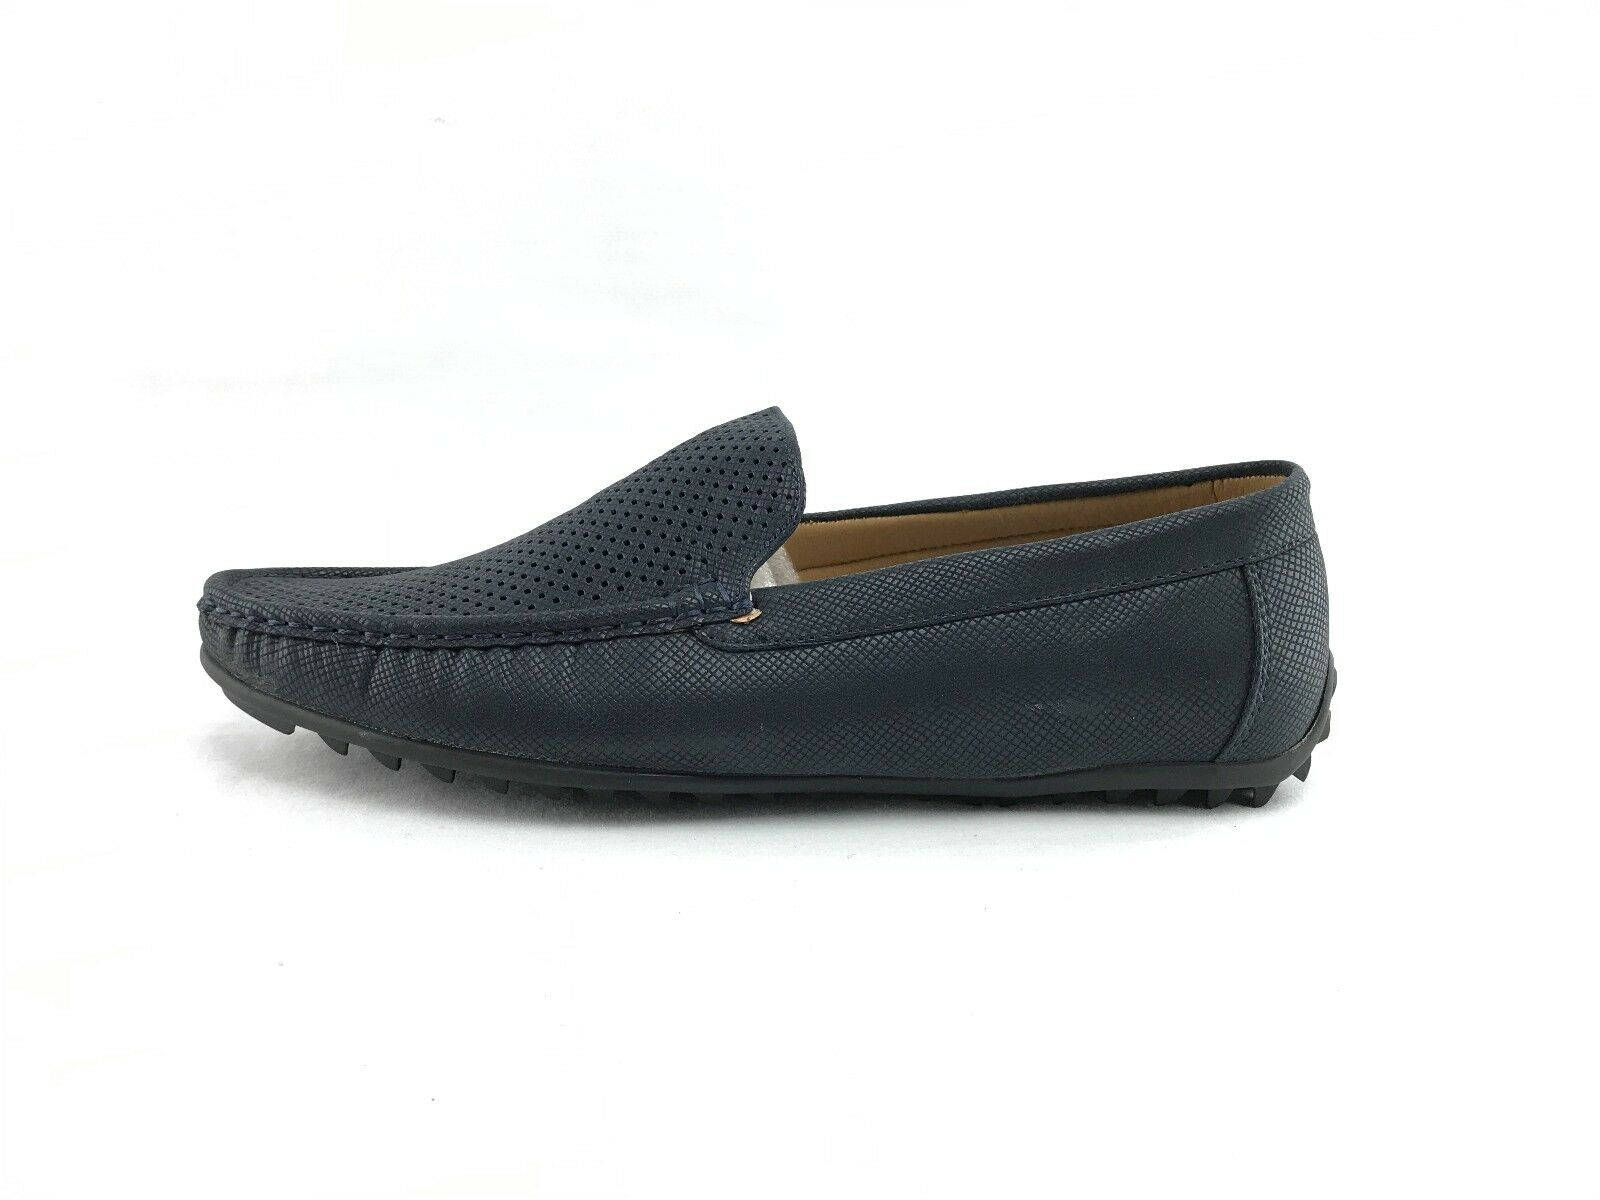 NEW Quentin Ashford 2632 Men's Navy On Go The Go On Premium Driving Shoes US Sz 7 A456 4e309b